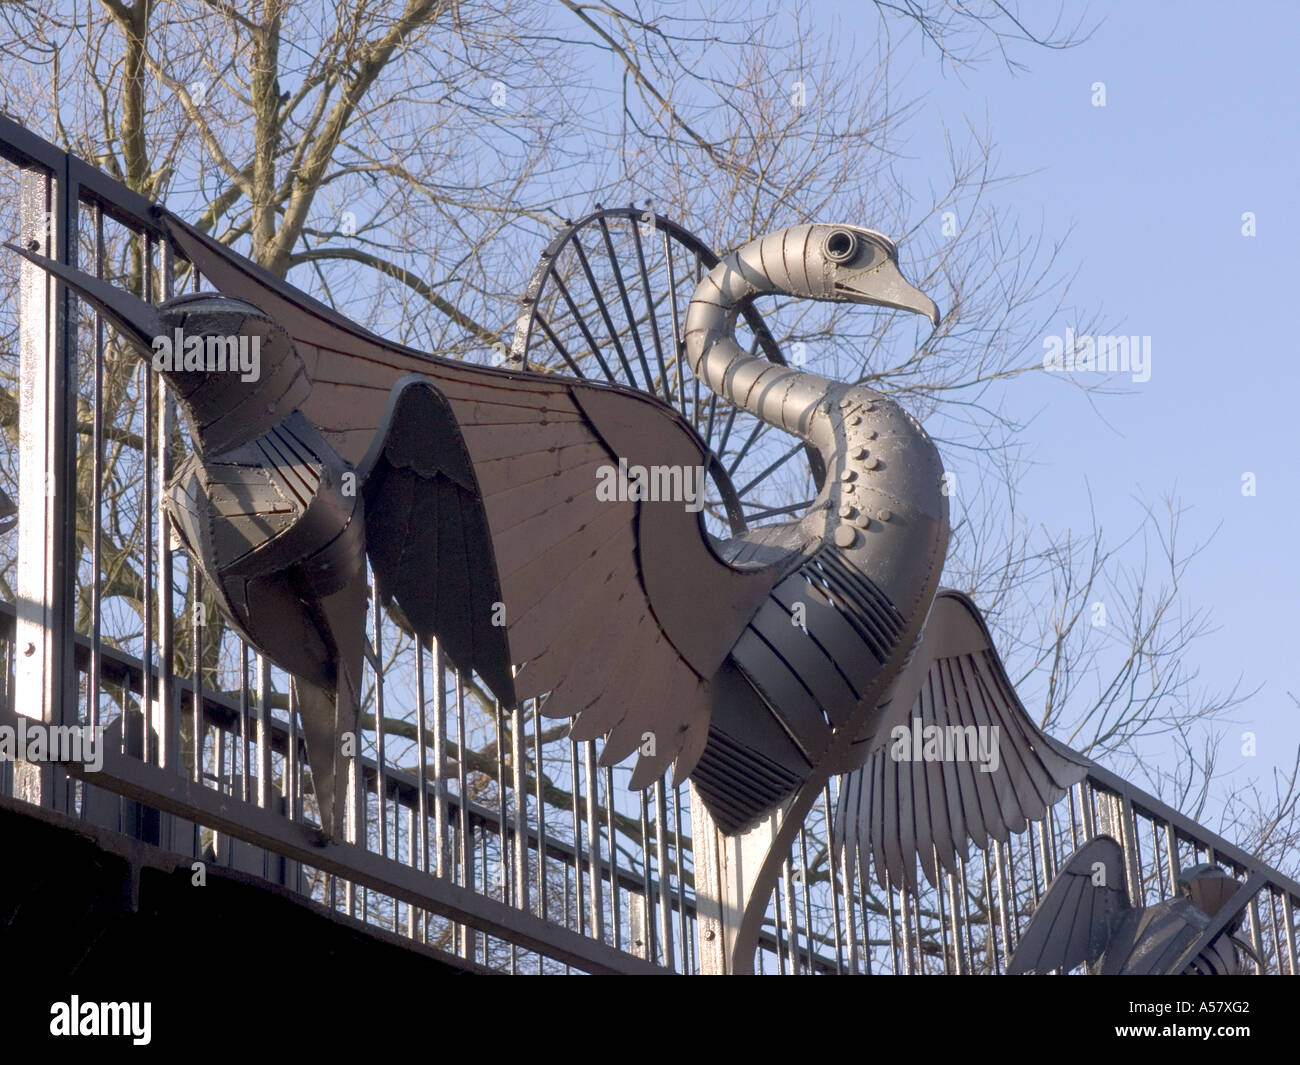 Swan metal sculpture on a bridge at Sutton Stop.Hawkesbury junction Coventry.West Midlands England - Stock Image